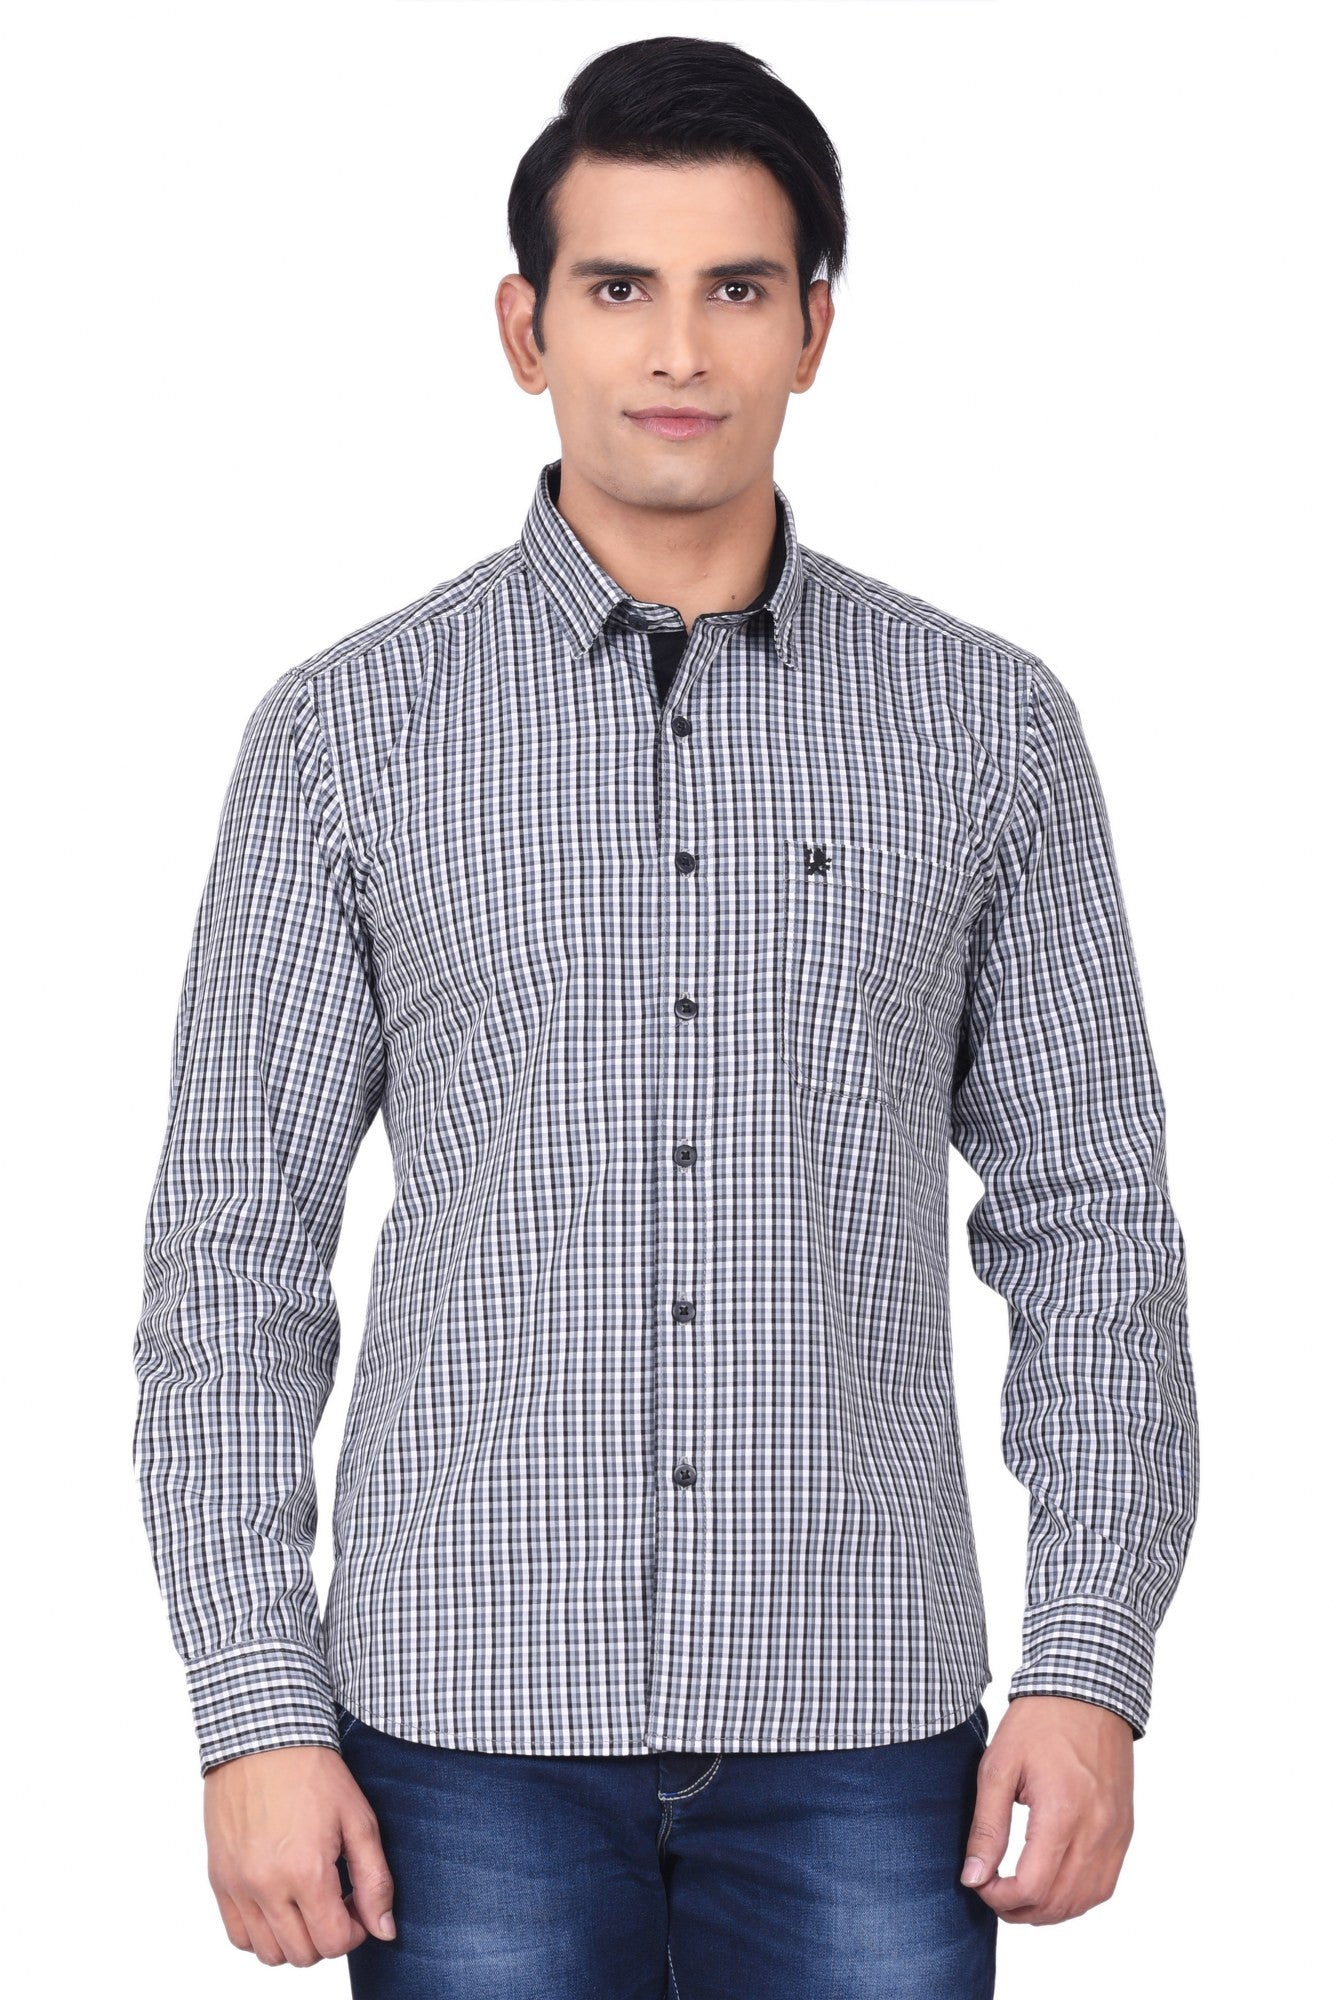 MOUSTACHE - SLIM FIT COTTON MEN'S SHIRT - BLACK/WHITE/GREY